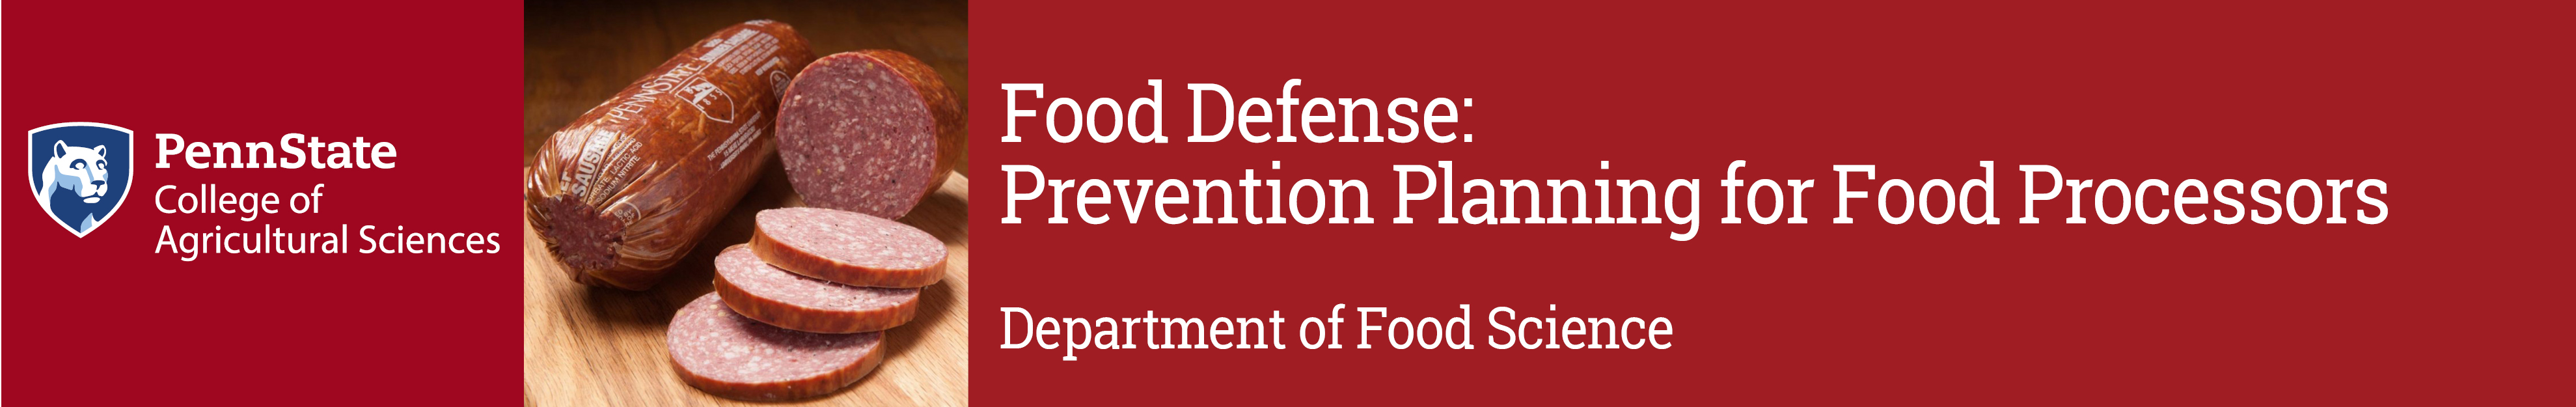 Food Defense - Prevention Planning for Food Processors